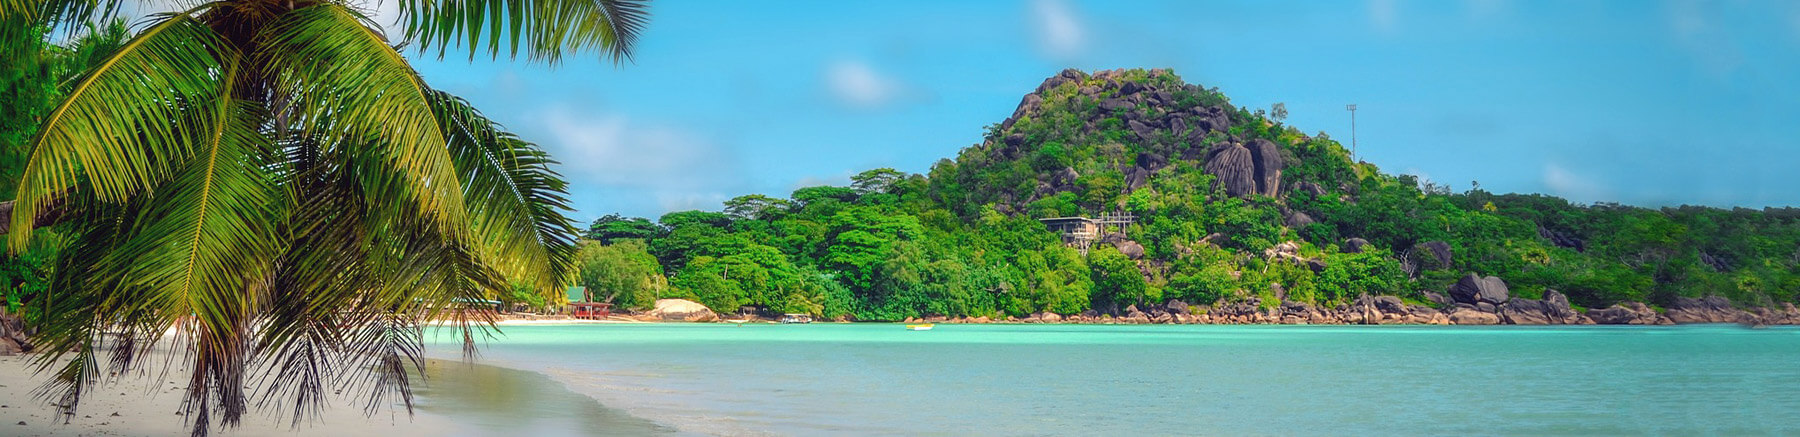 Beautiful beach in the Seychelles with turquoise water, a palm tree and big rocks